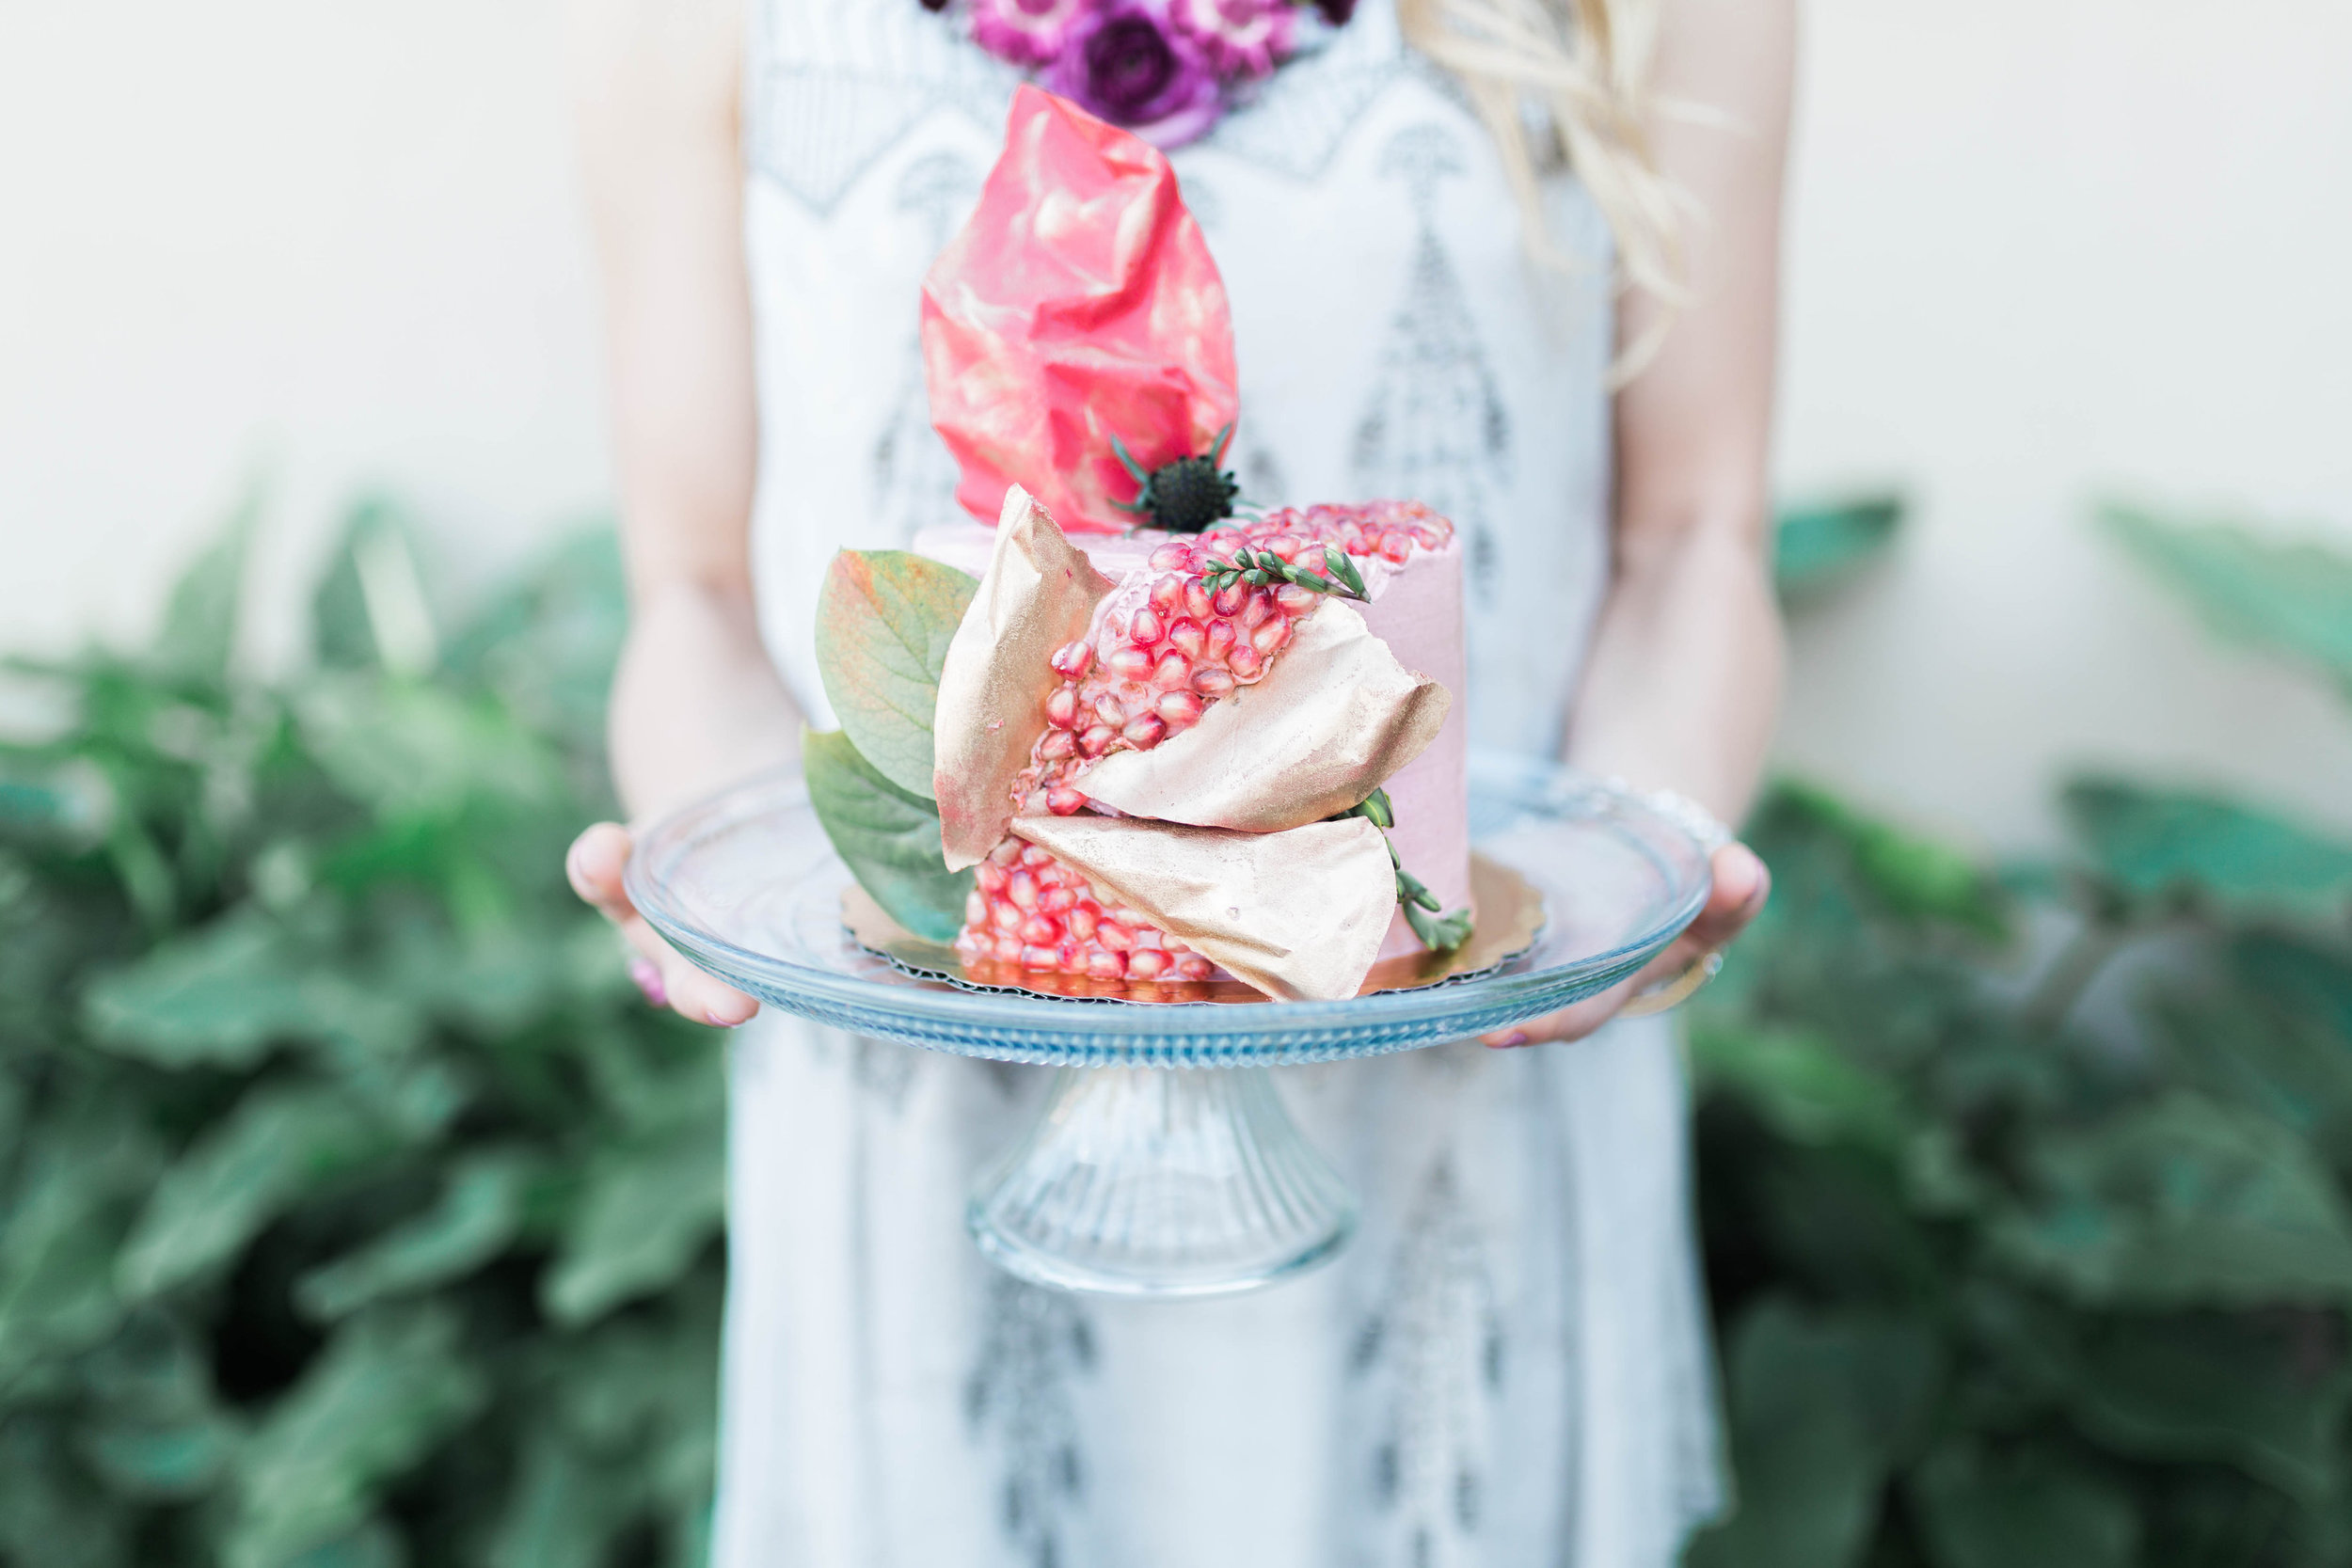 Frosted cake decorated with pomegranate seeds and gold chocolate shards. Photo: Amanda Azarpour